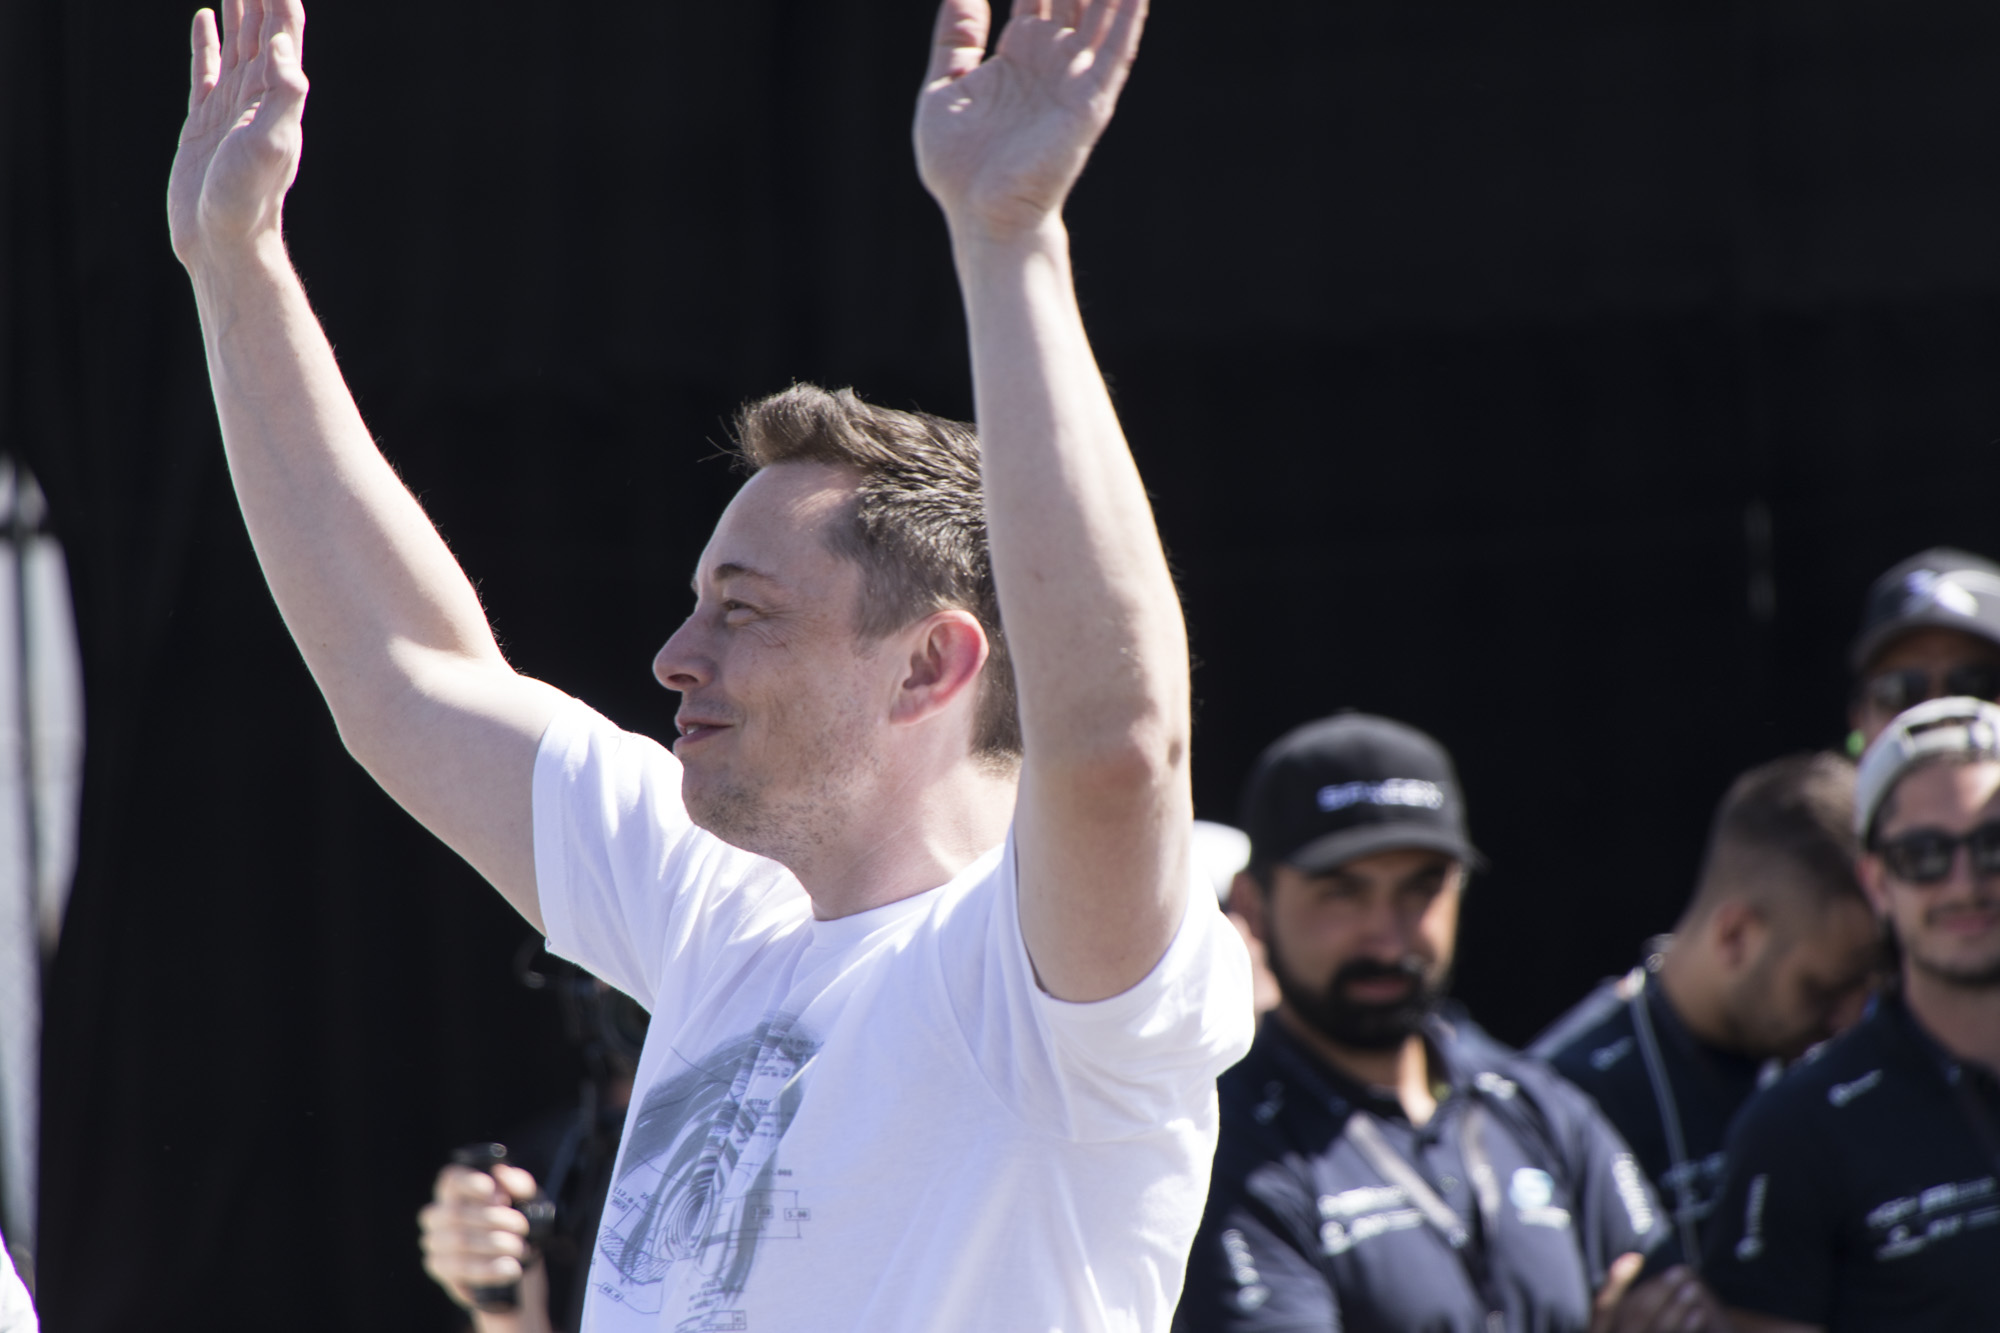 Billionaire Elon Musk Has A Secret Comedy Project In The Works